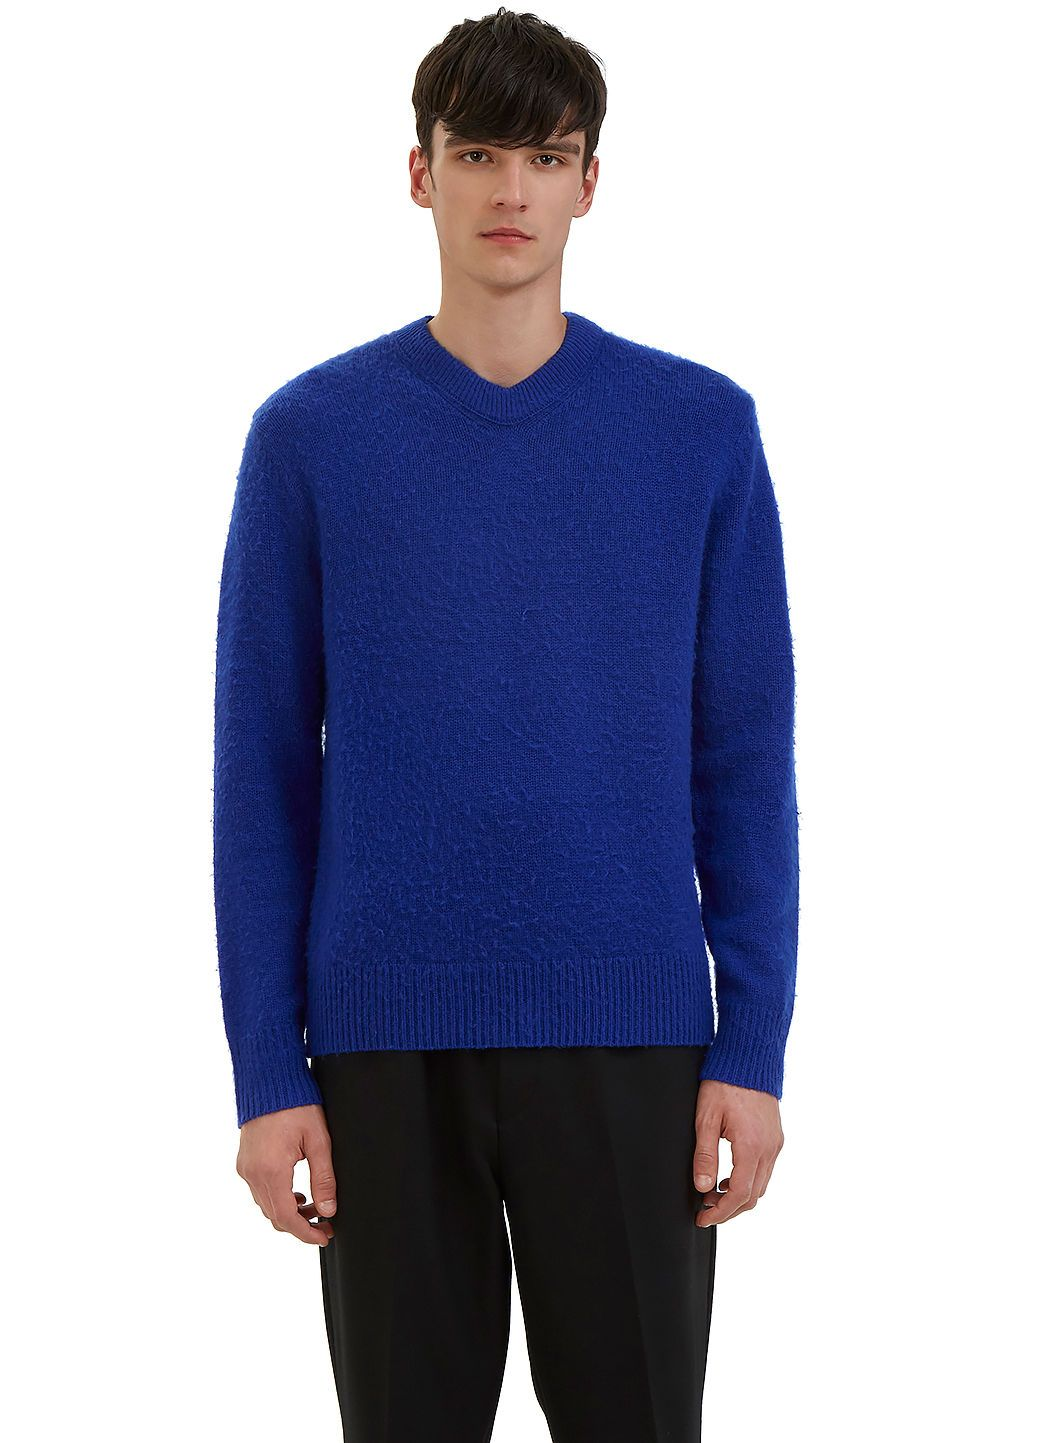 ACNE STUDIOS Men S Peele Cashmere Knit Sweater In Blue.  acnestudios  cloth    9fdd91e863f